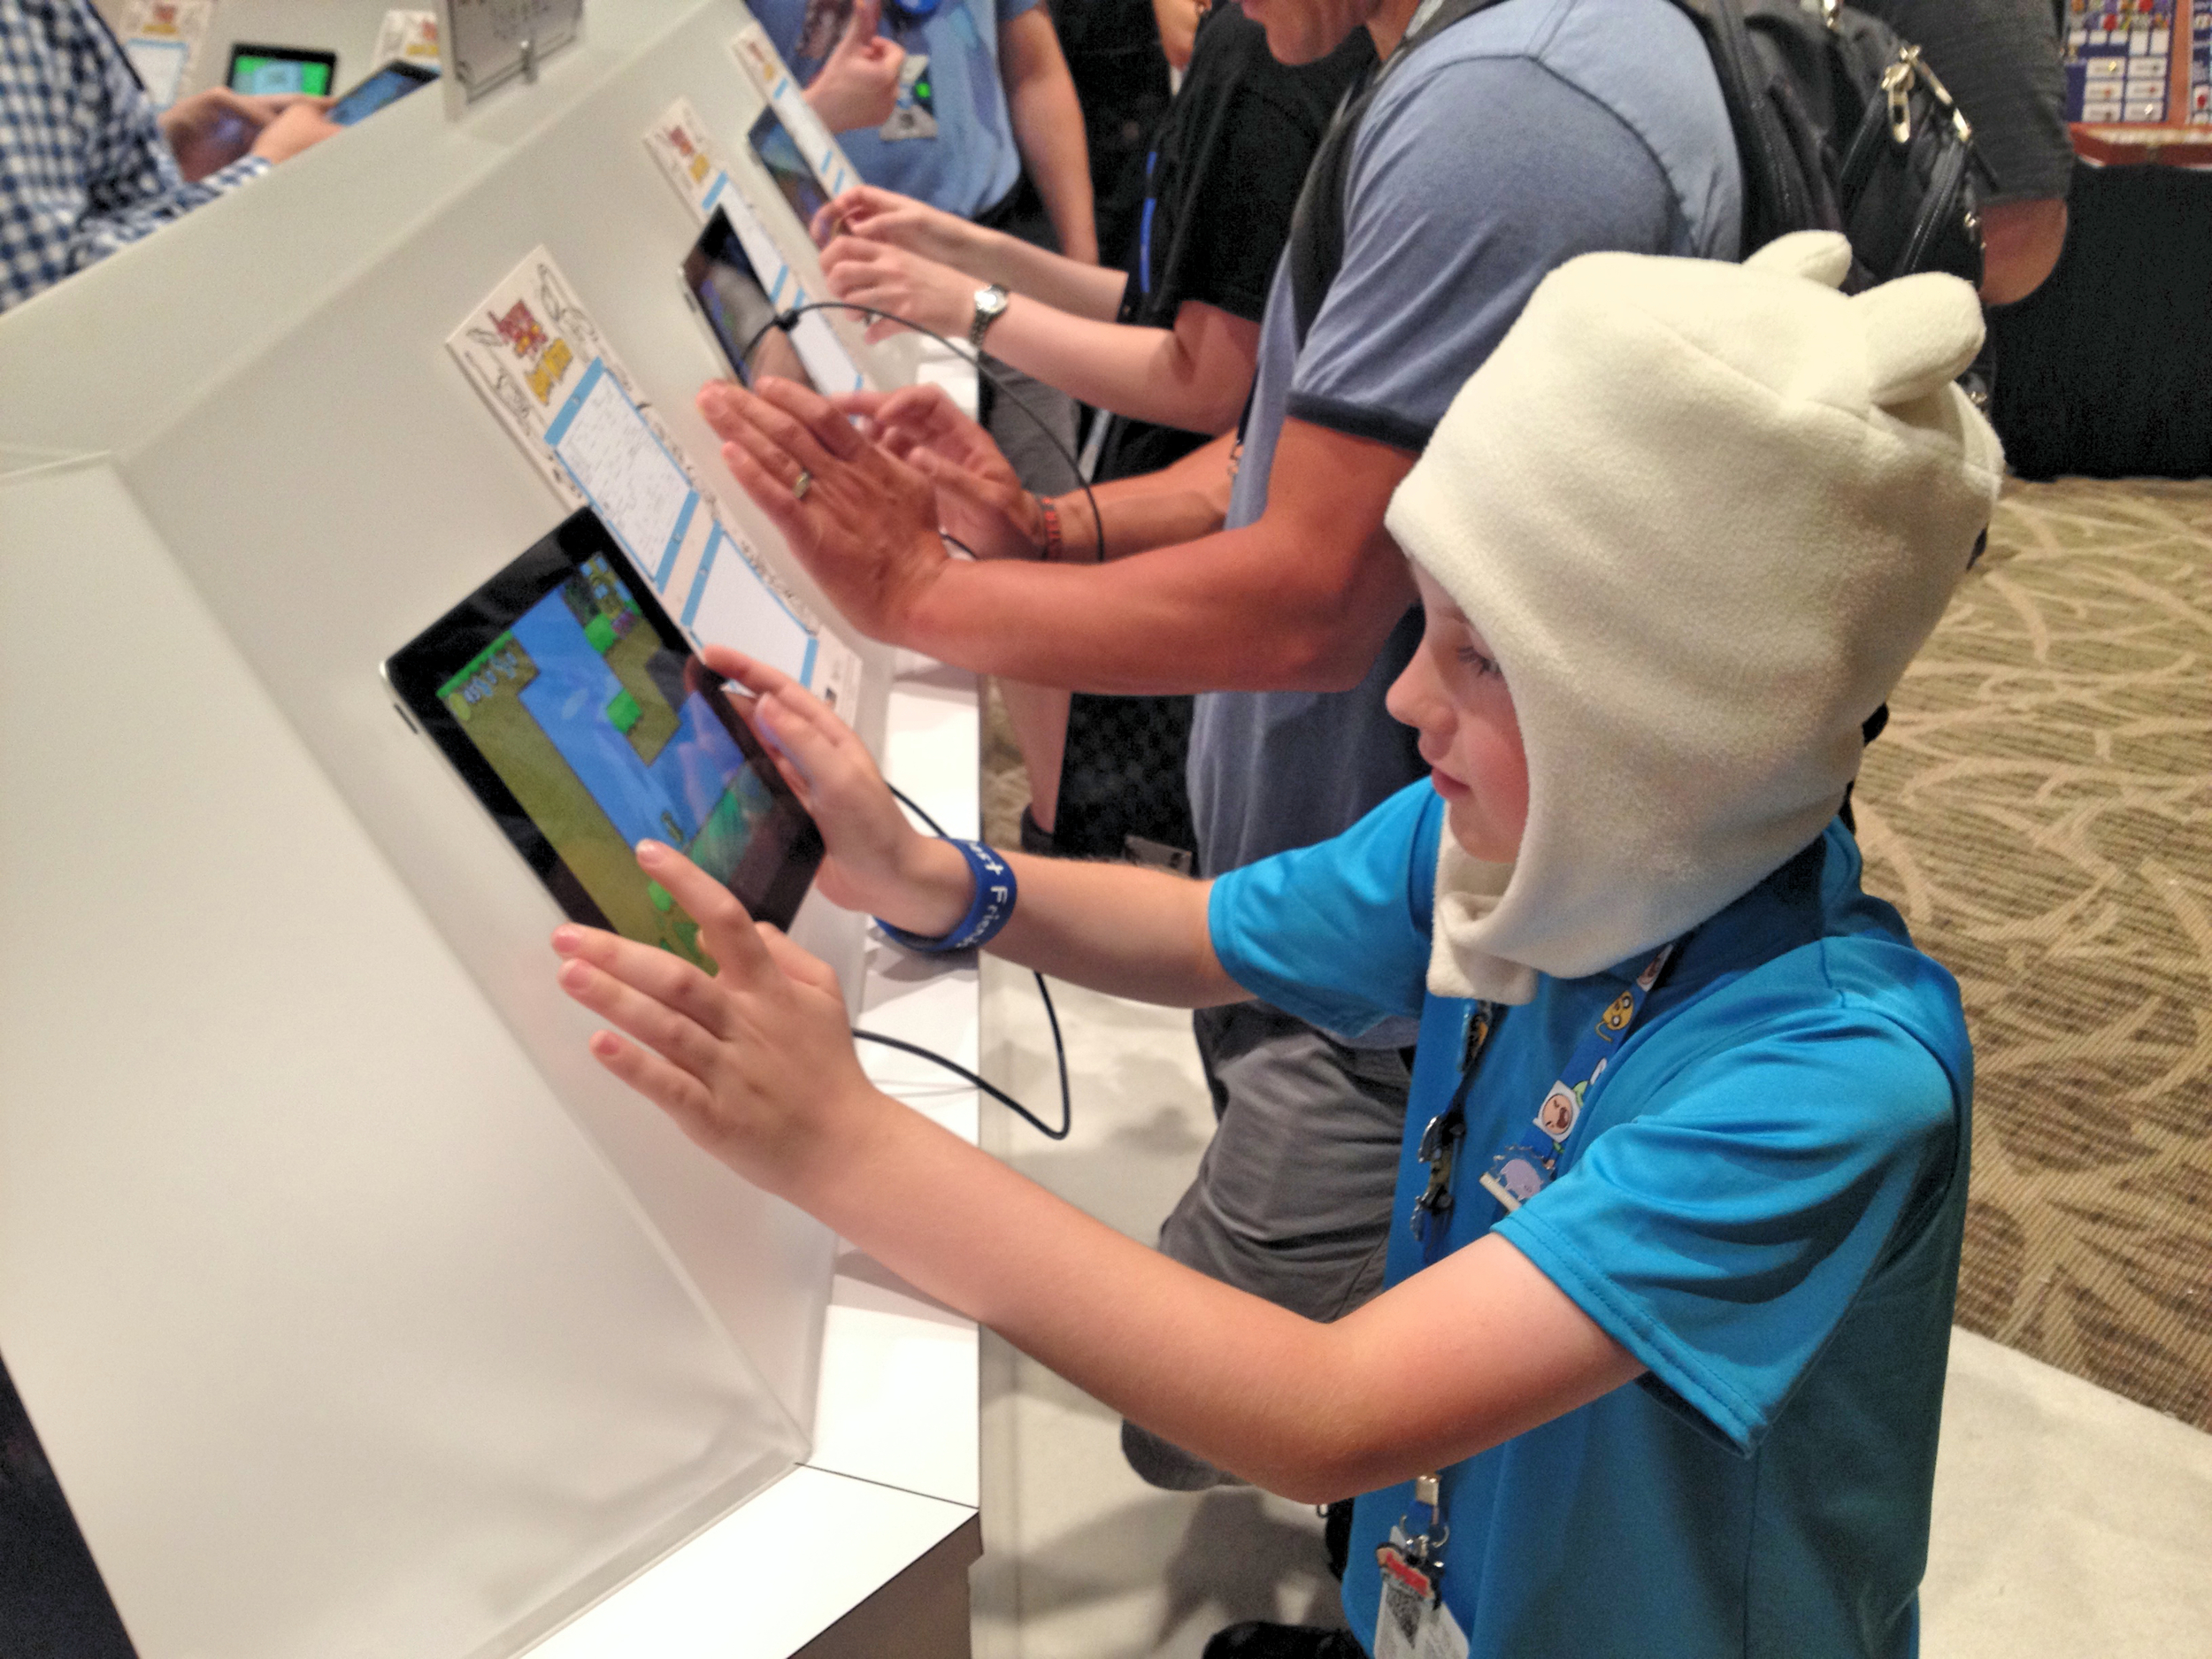 A player enjoying an early beta release of Adventure Time Game Wizard in the Cartoon Network booth at Pax Prime 2014 in Seattle.  Click here  to see more pictures from this event.